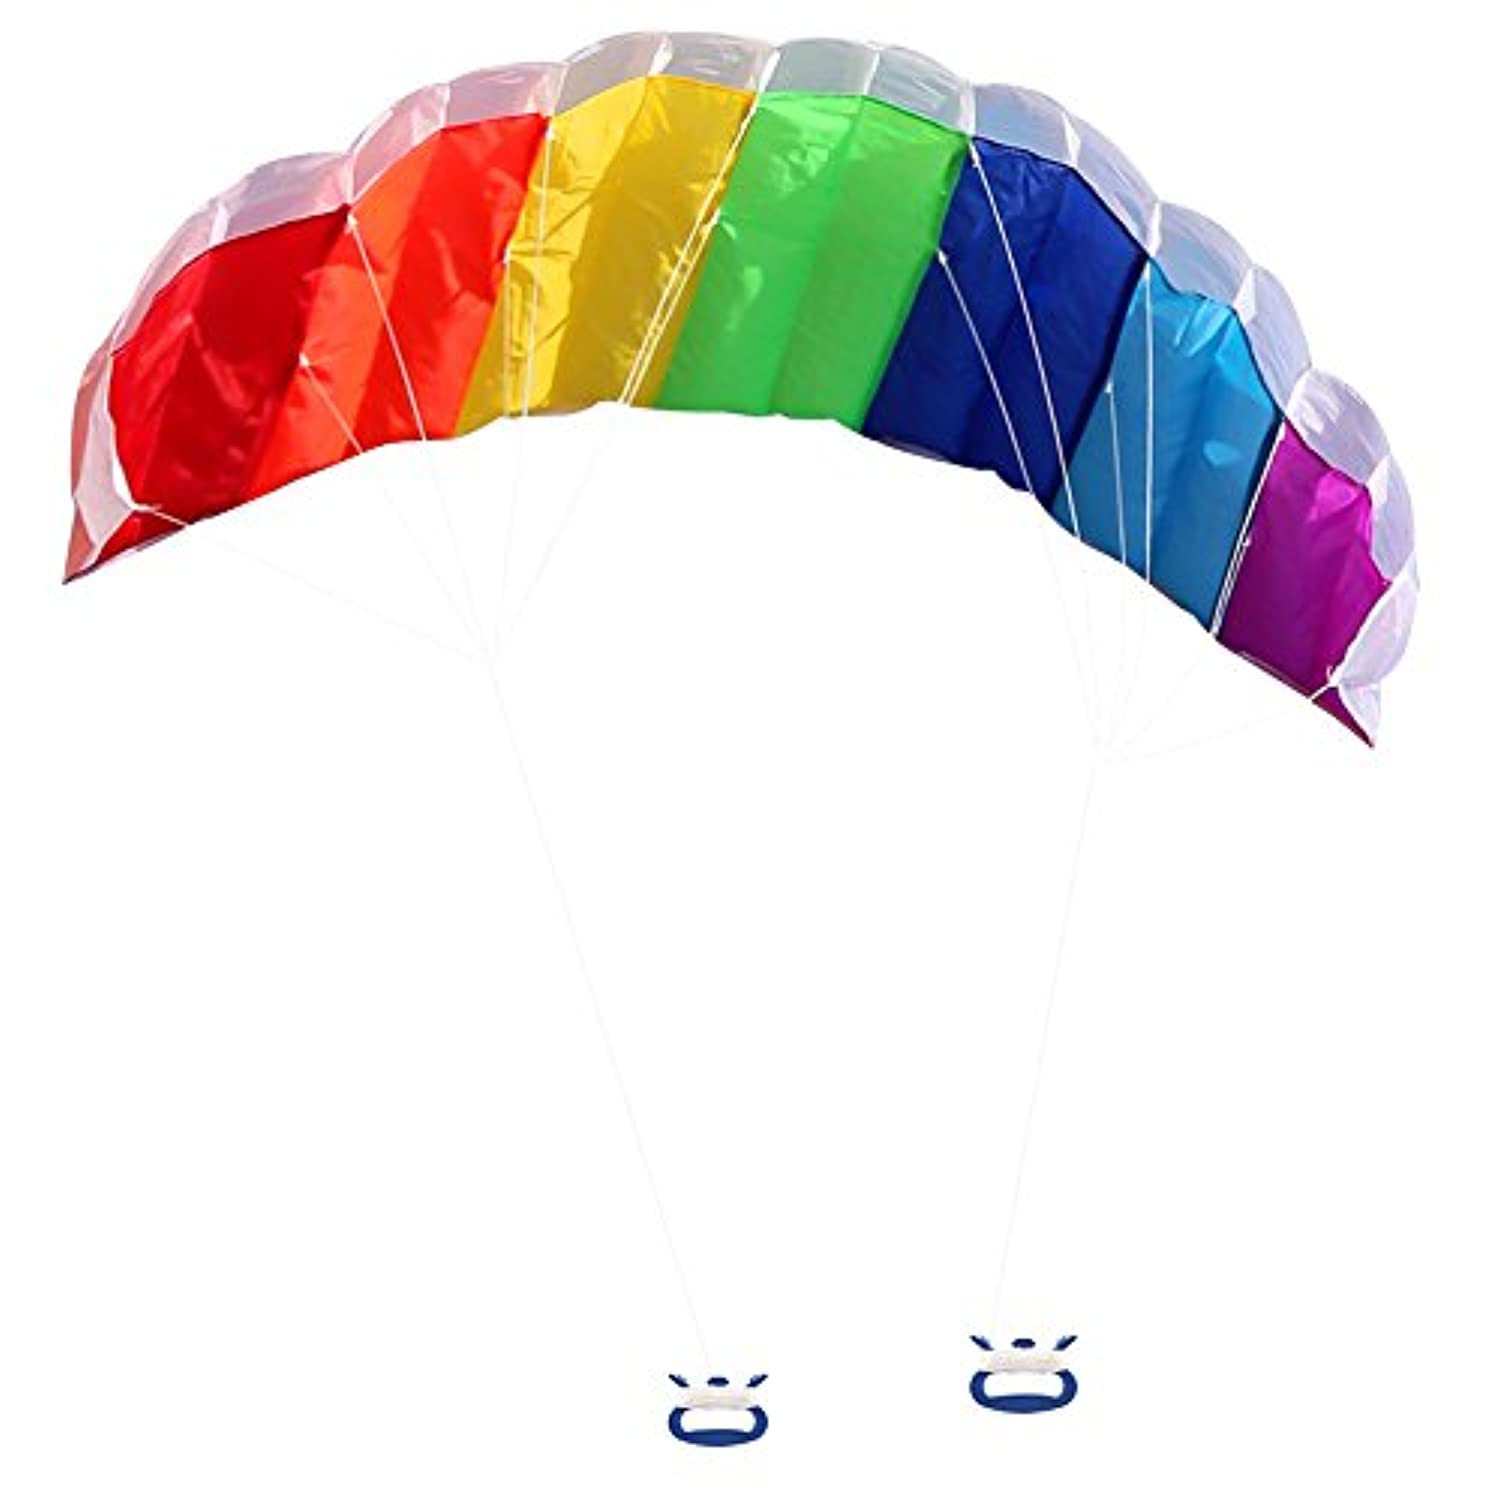 Rainbow Sport Kite, Zooawa 160cm Dual Line Stunt Parafoil with Flying Tools Outdoor Fun Play Toy - Rainbow